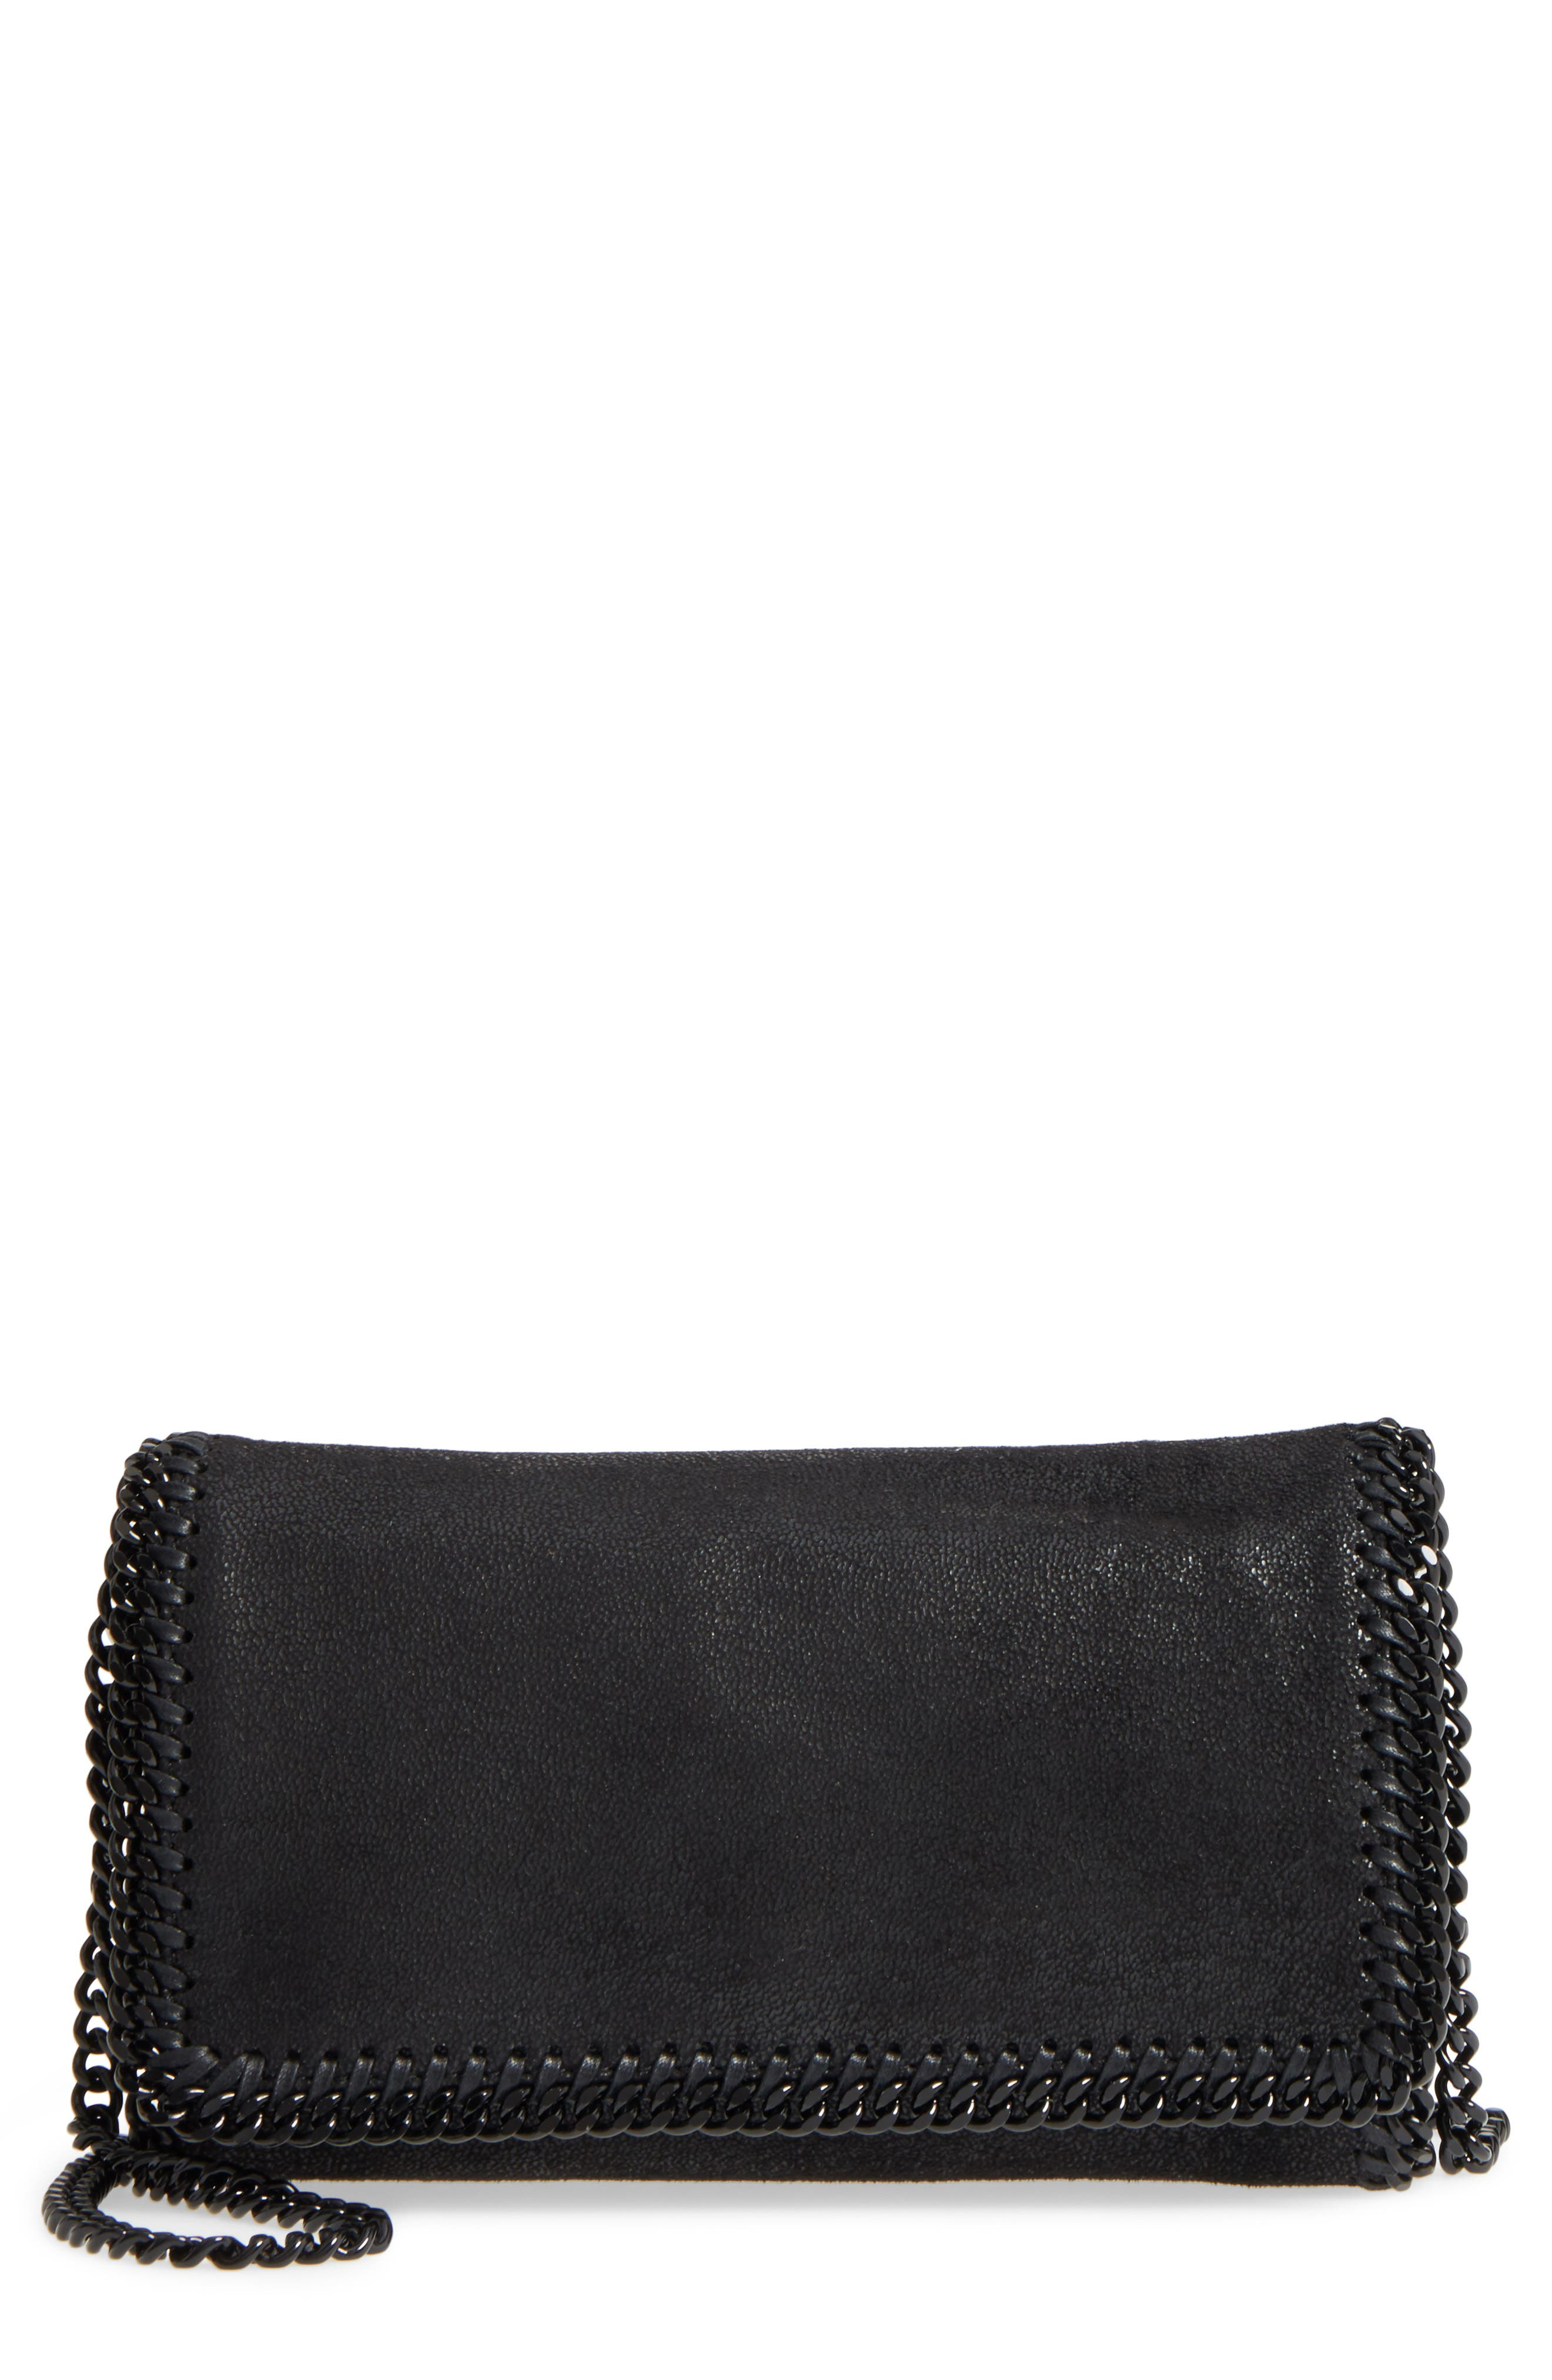 Main Image - Stella McCartney Falabella Shaggy Deer Faux Leather Clutch